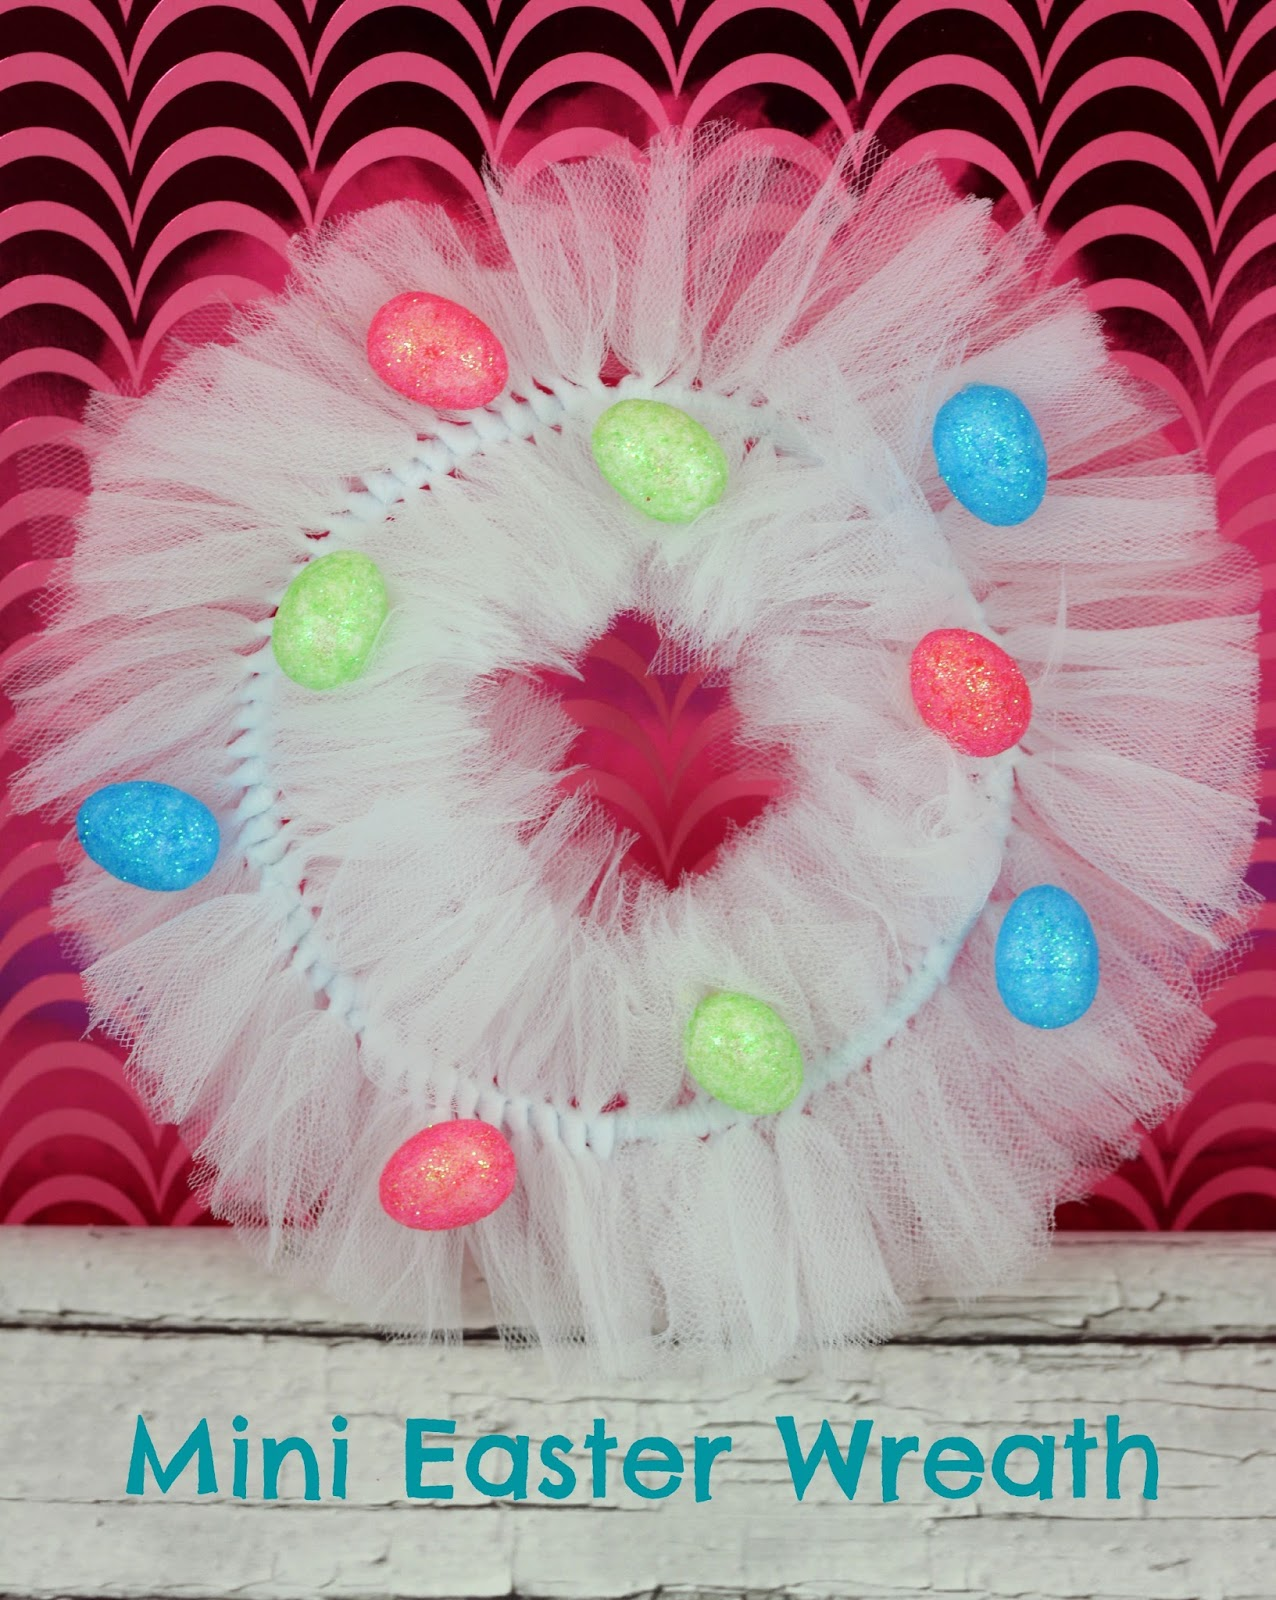 Mini #Spring Tulle #Wreath #DIY #crafts #Easter